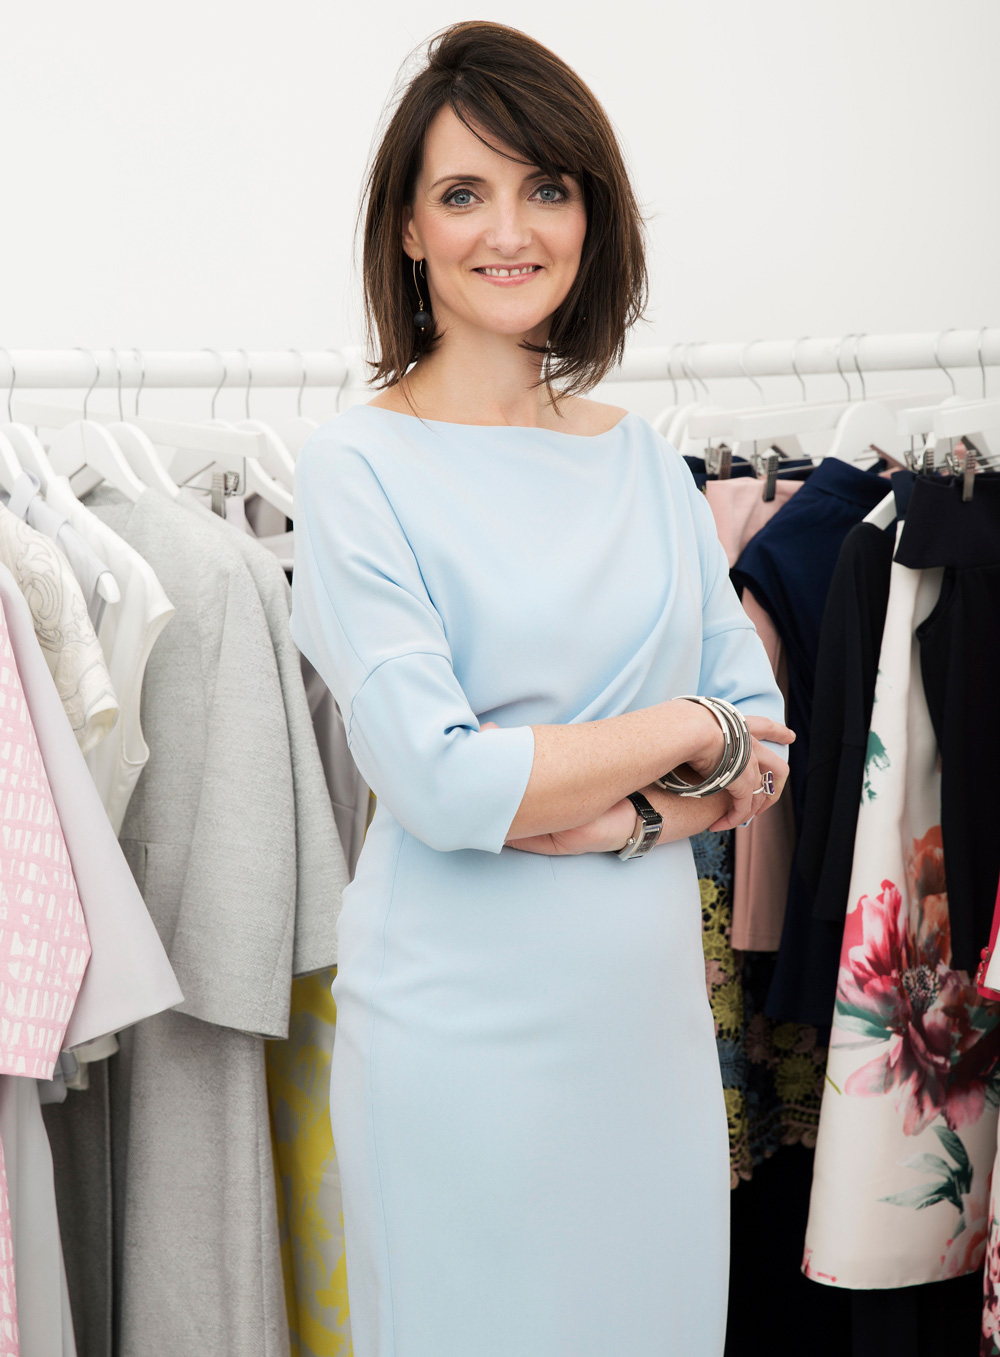 The-Gloss-Magazine-Look-The-Business-Fiona-Heaney-1